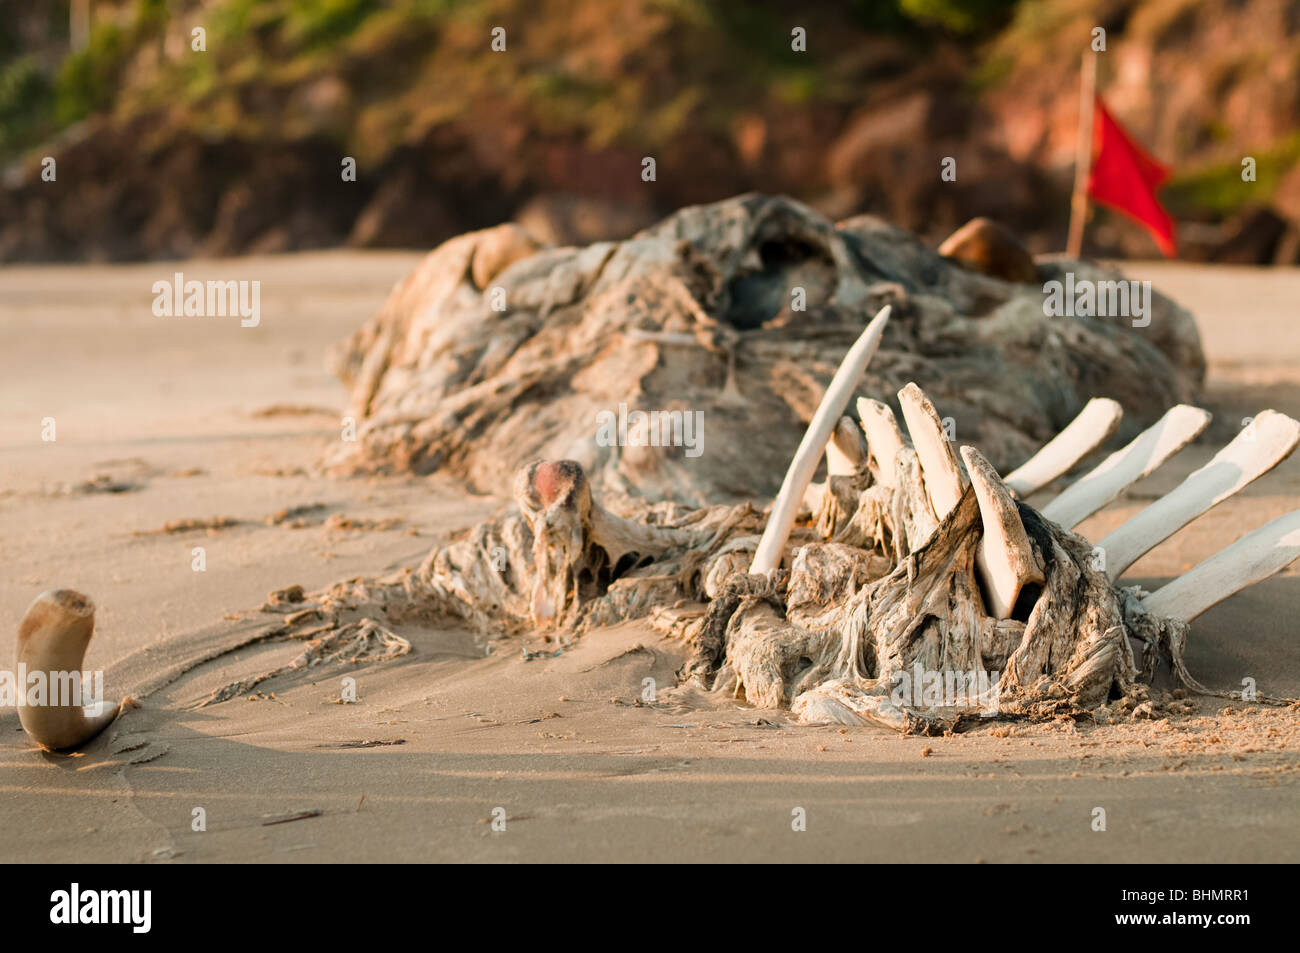 Beached Whale Carcus - Stock Image